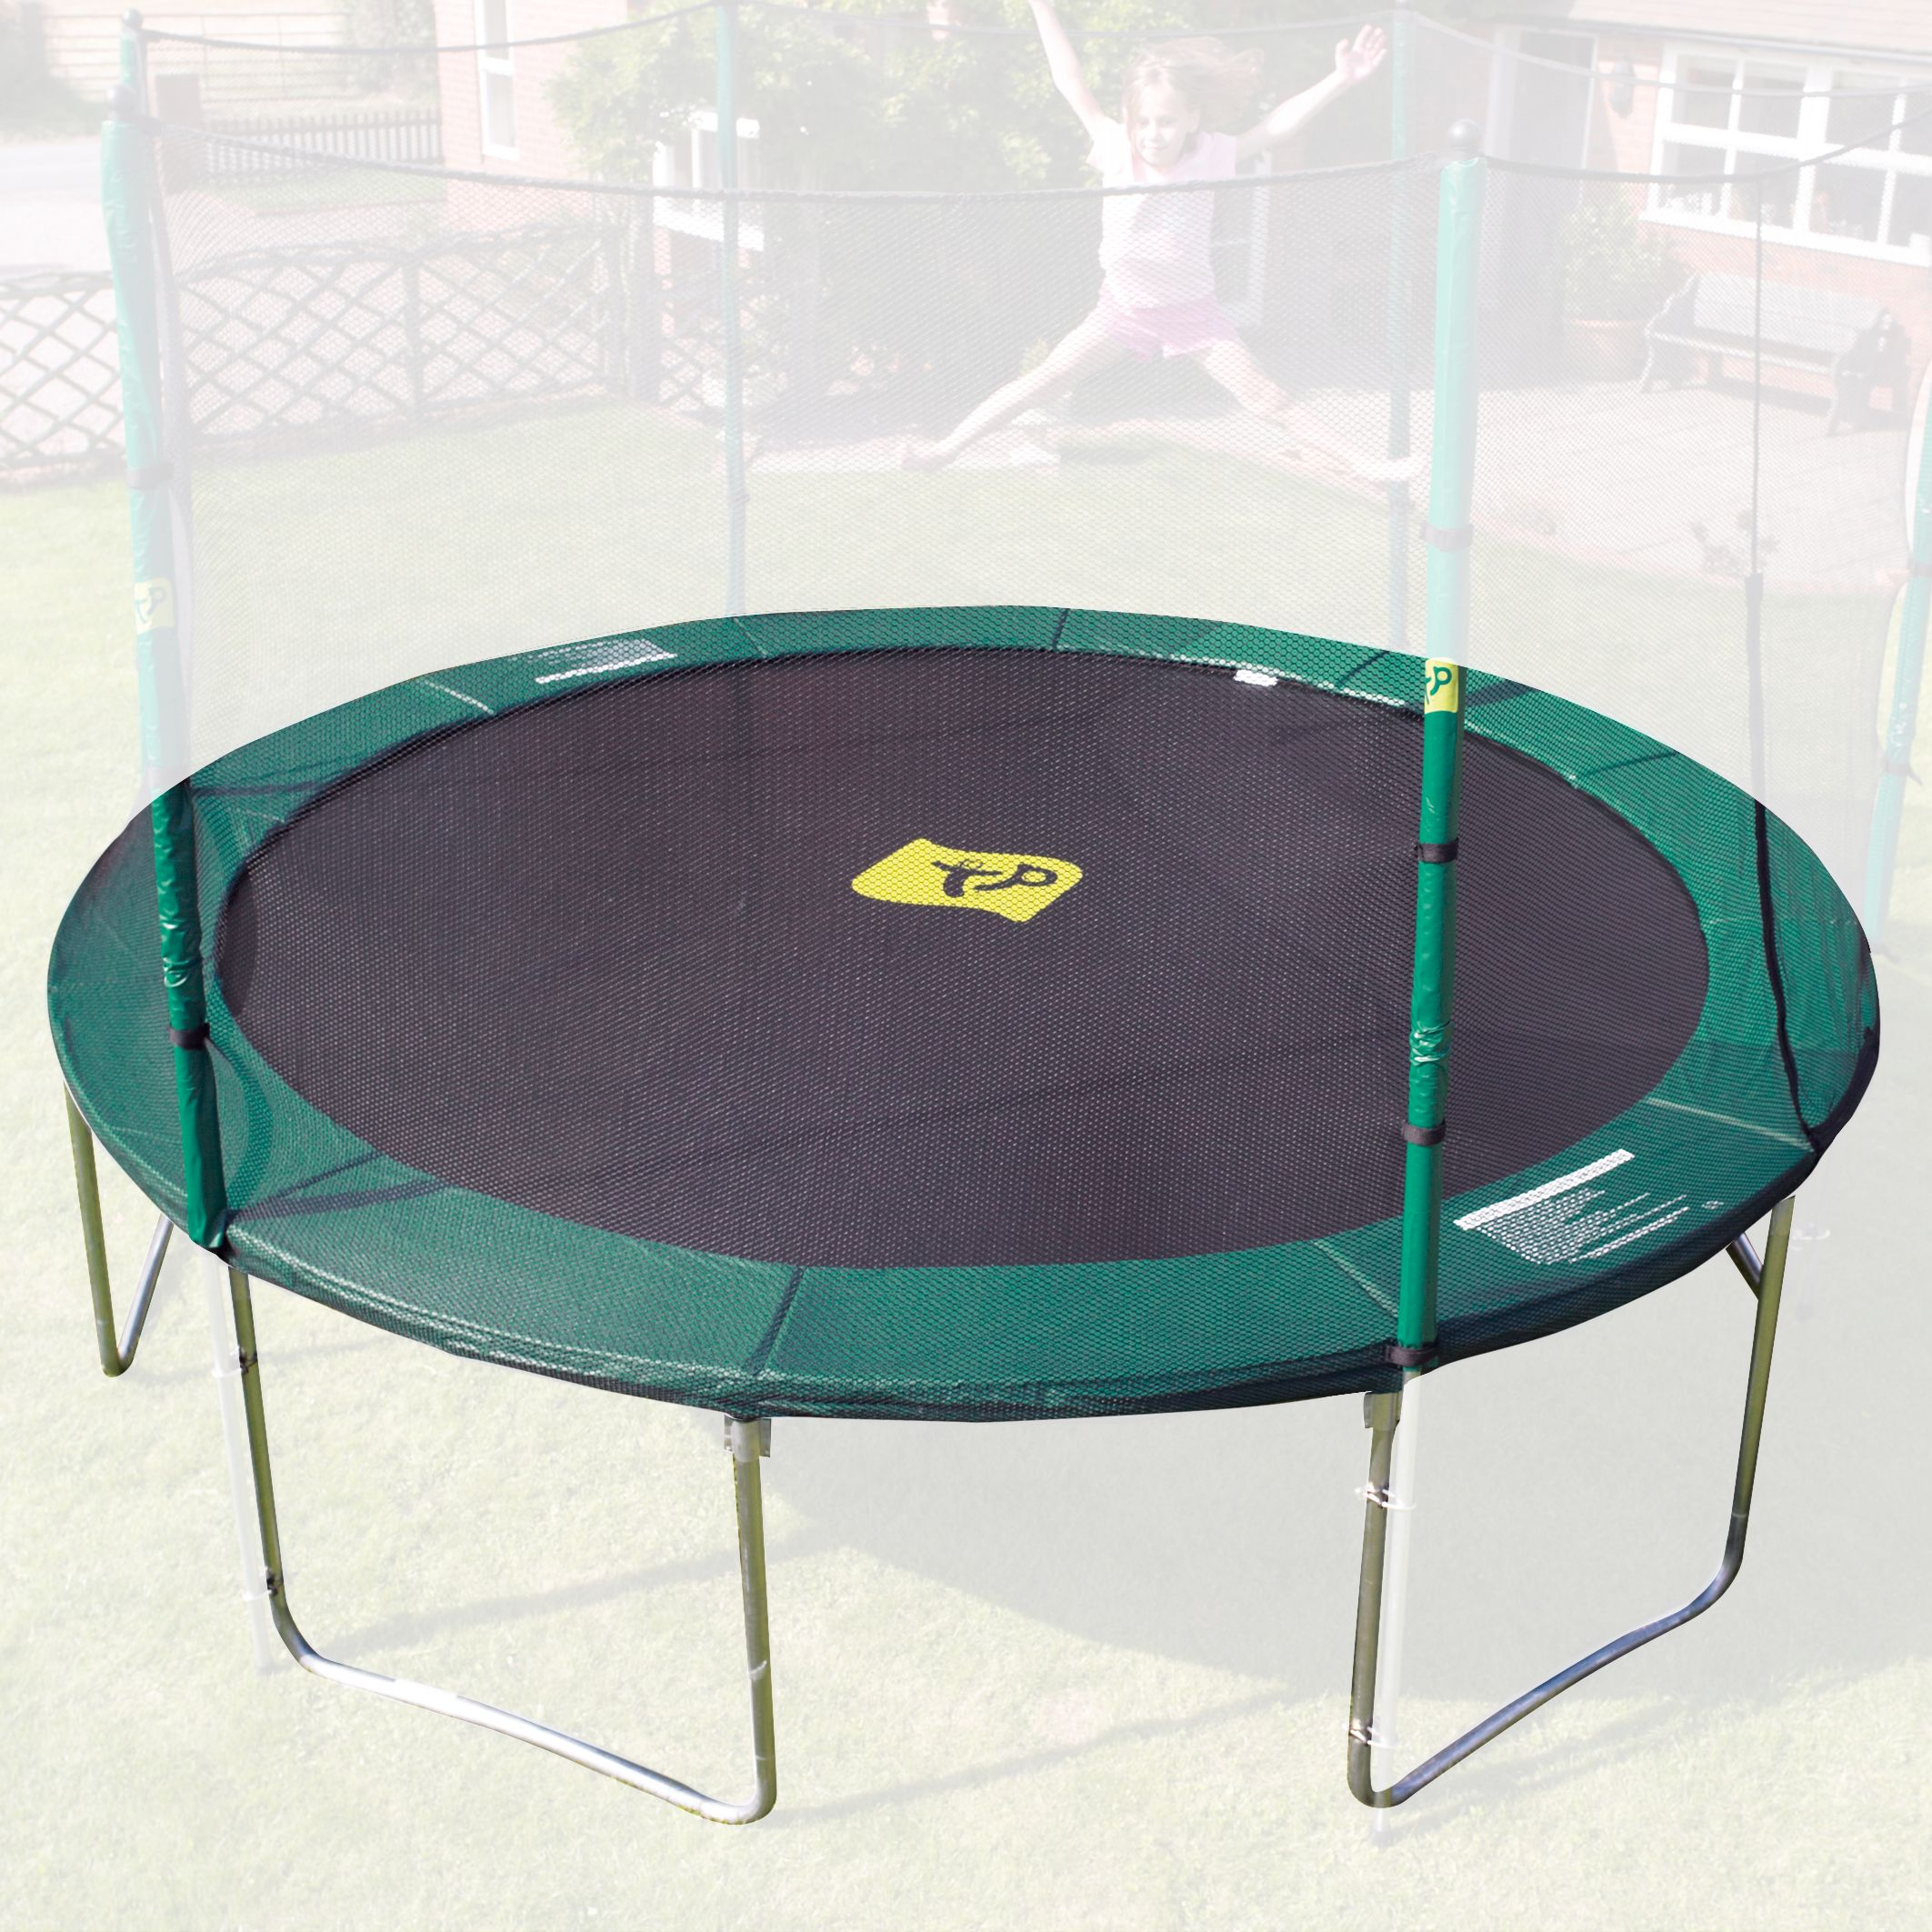 TP272 Sovereign Trampoline, 12ft